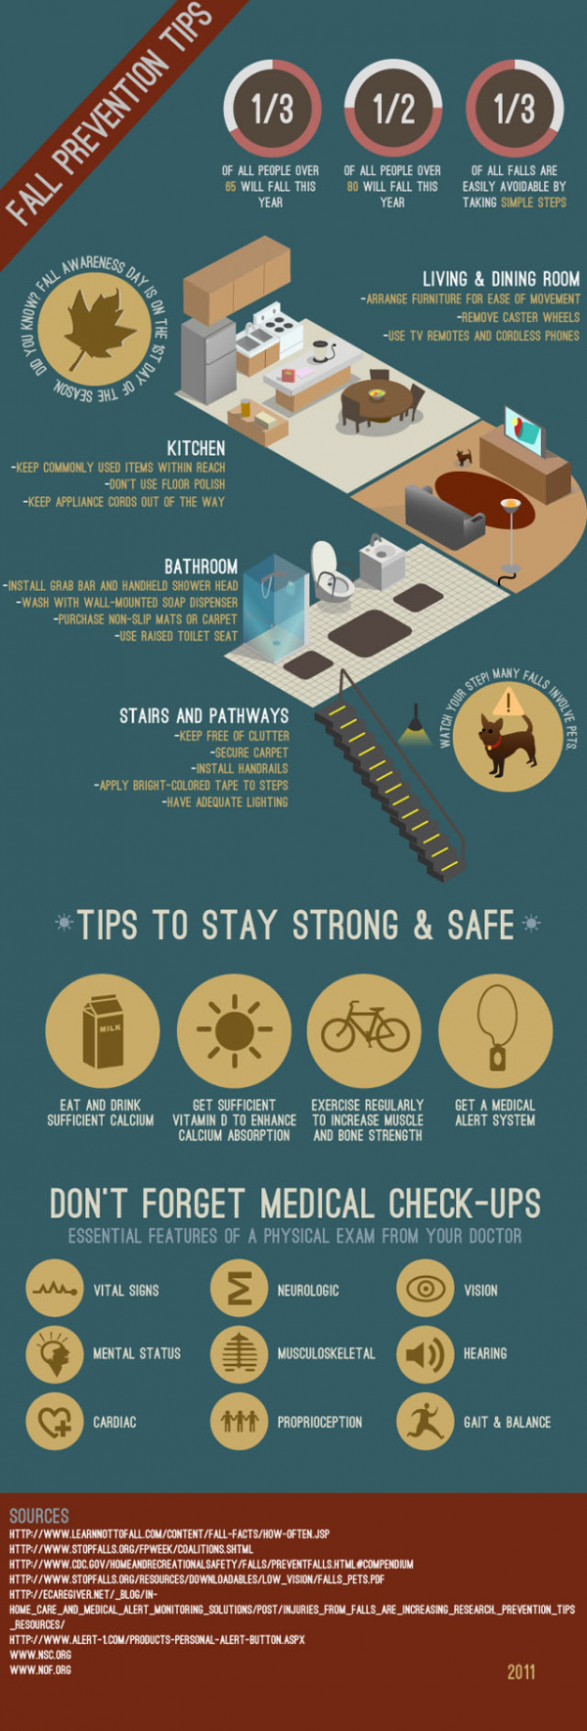 Fall Prevention for Seniors: Tips to Prevent Falls at Home